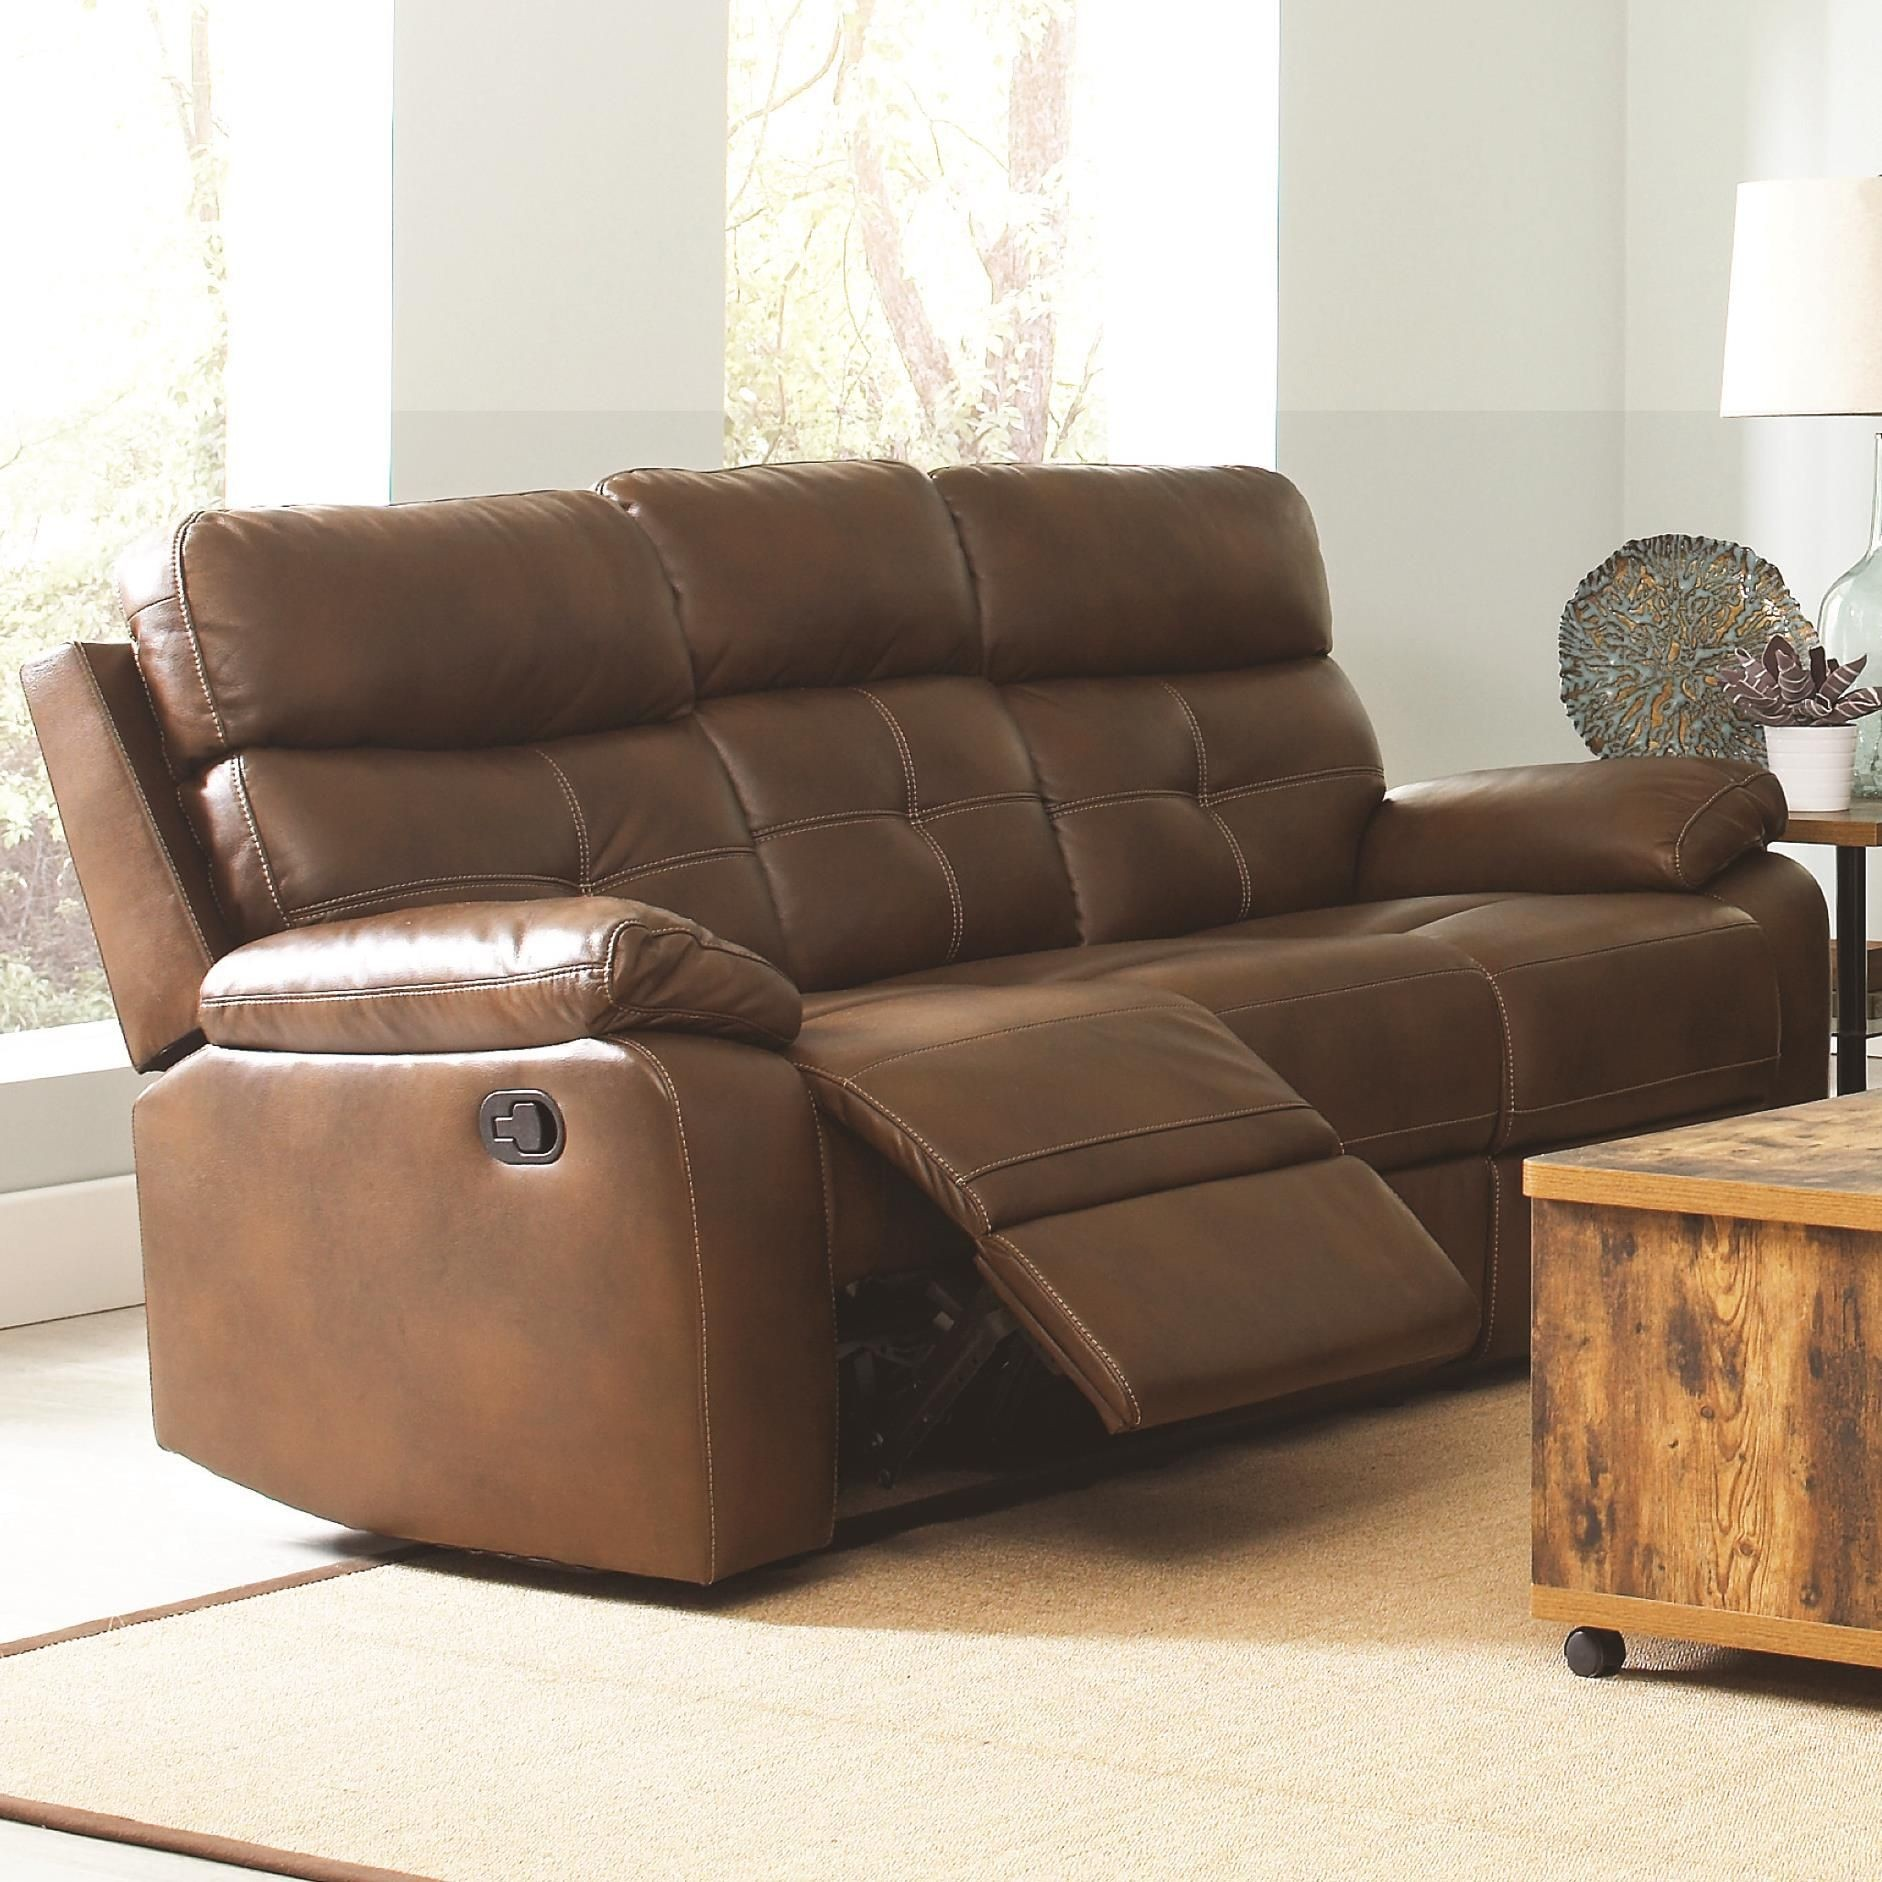 Damiano Faux Leather Reclining Sofa From Coaster (601691